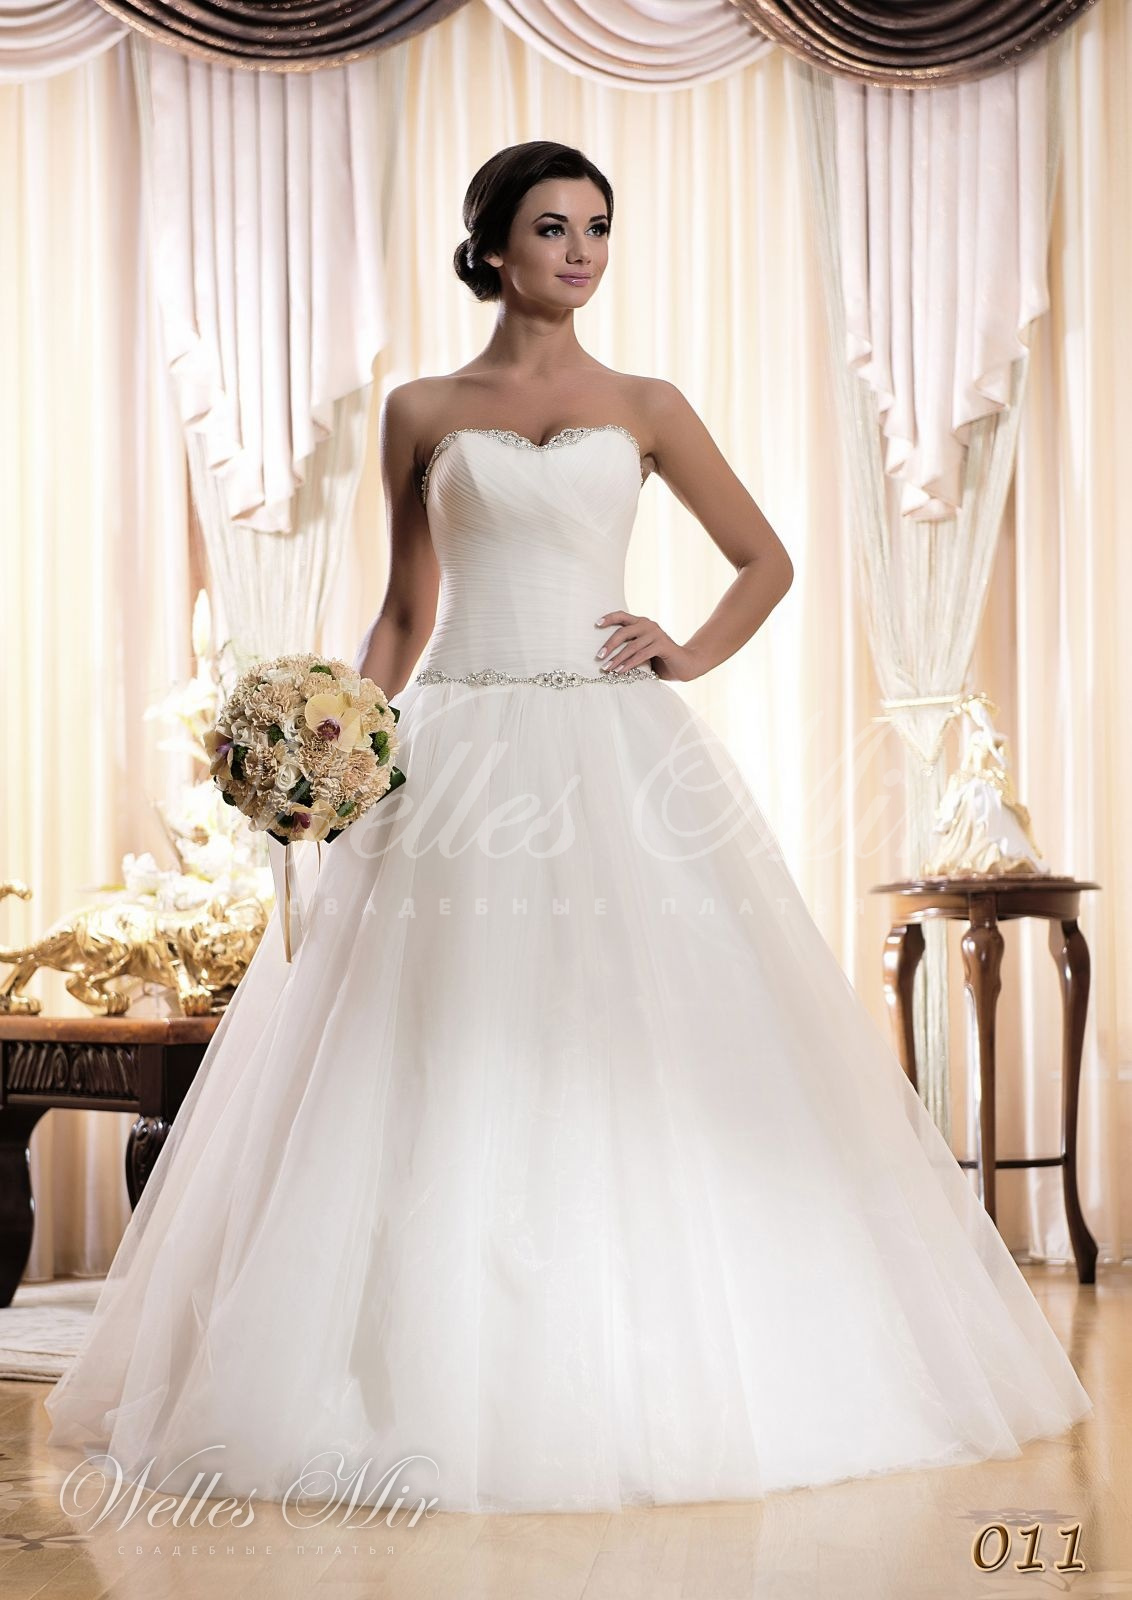 Wedding dresses 011